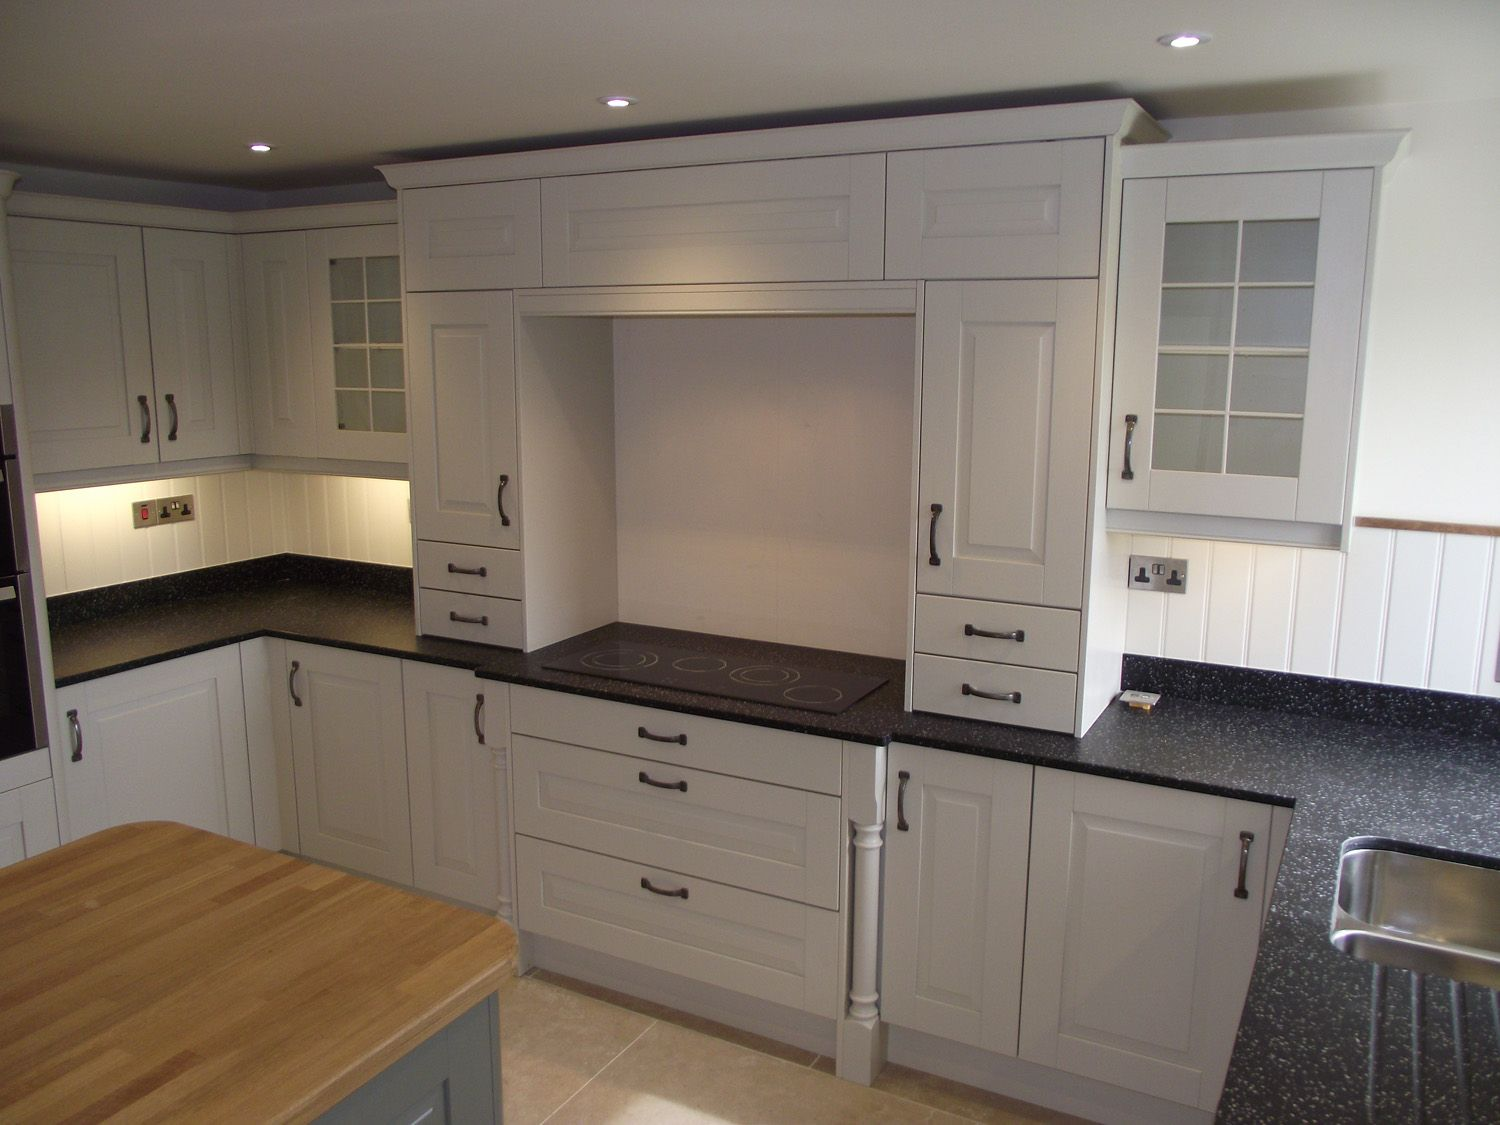 Cheap Kitchens  Discount Kitchens for Sale Online  Cheap Kitchen